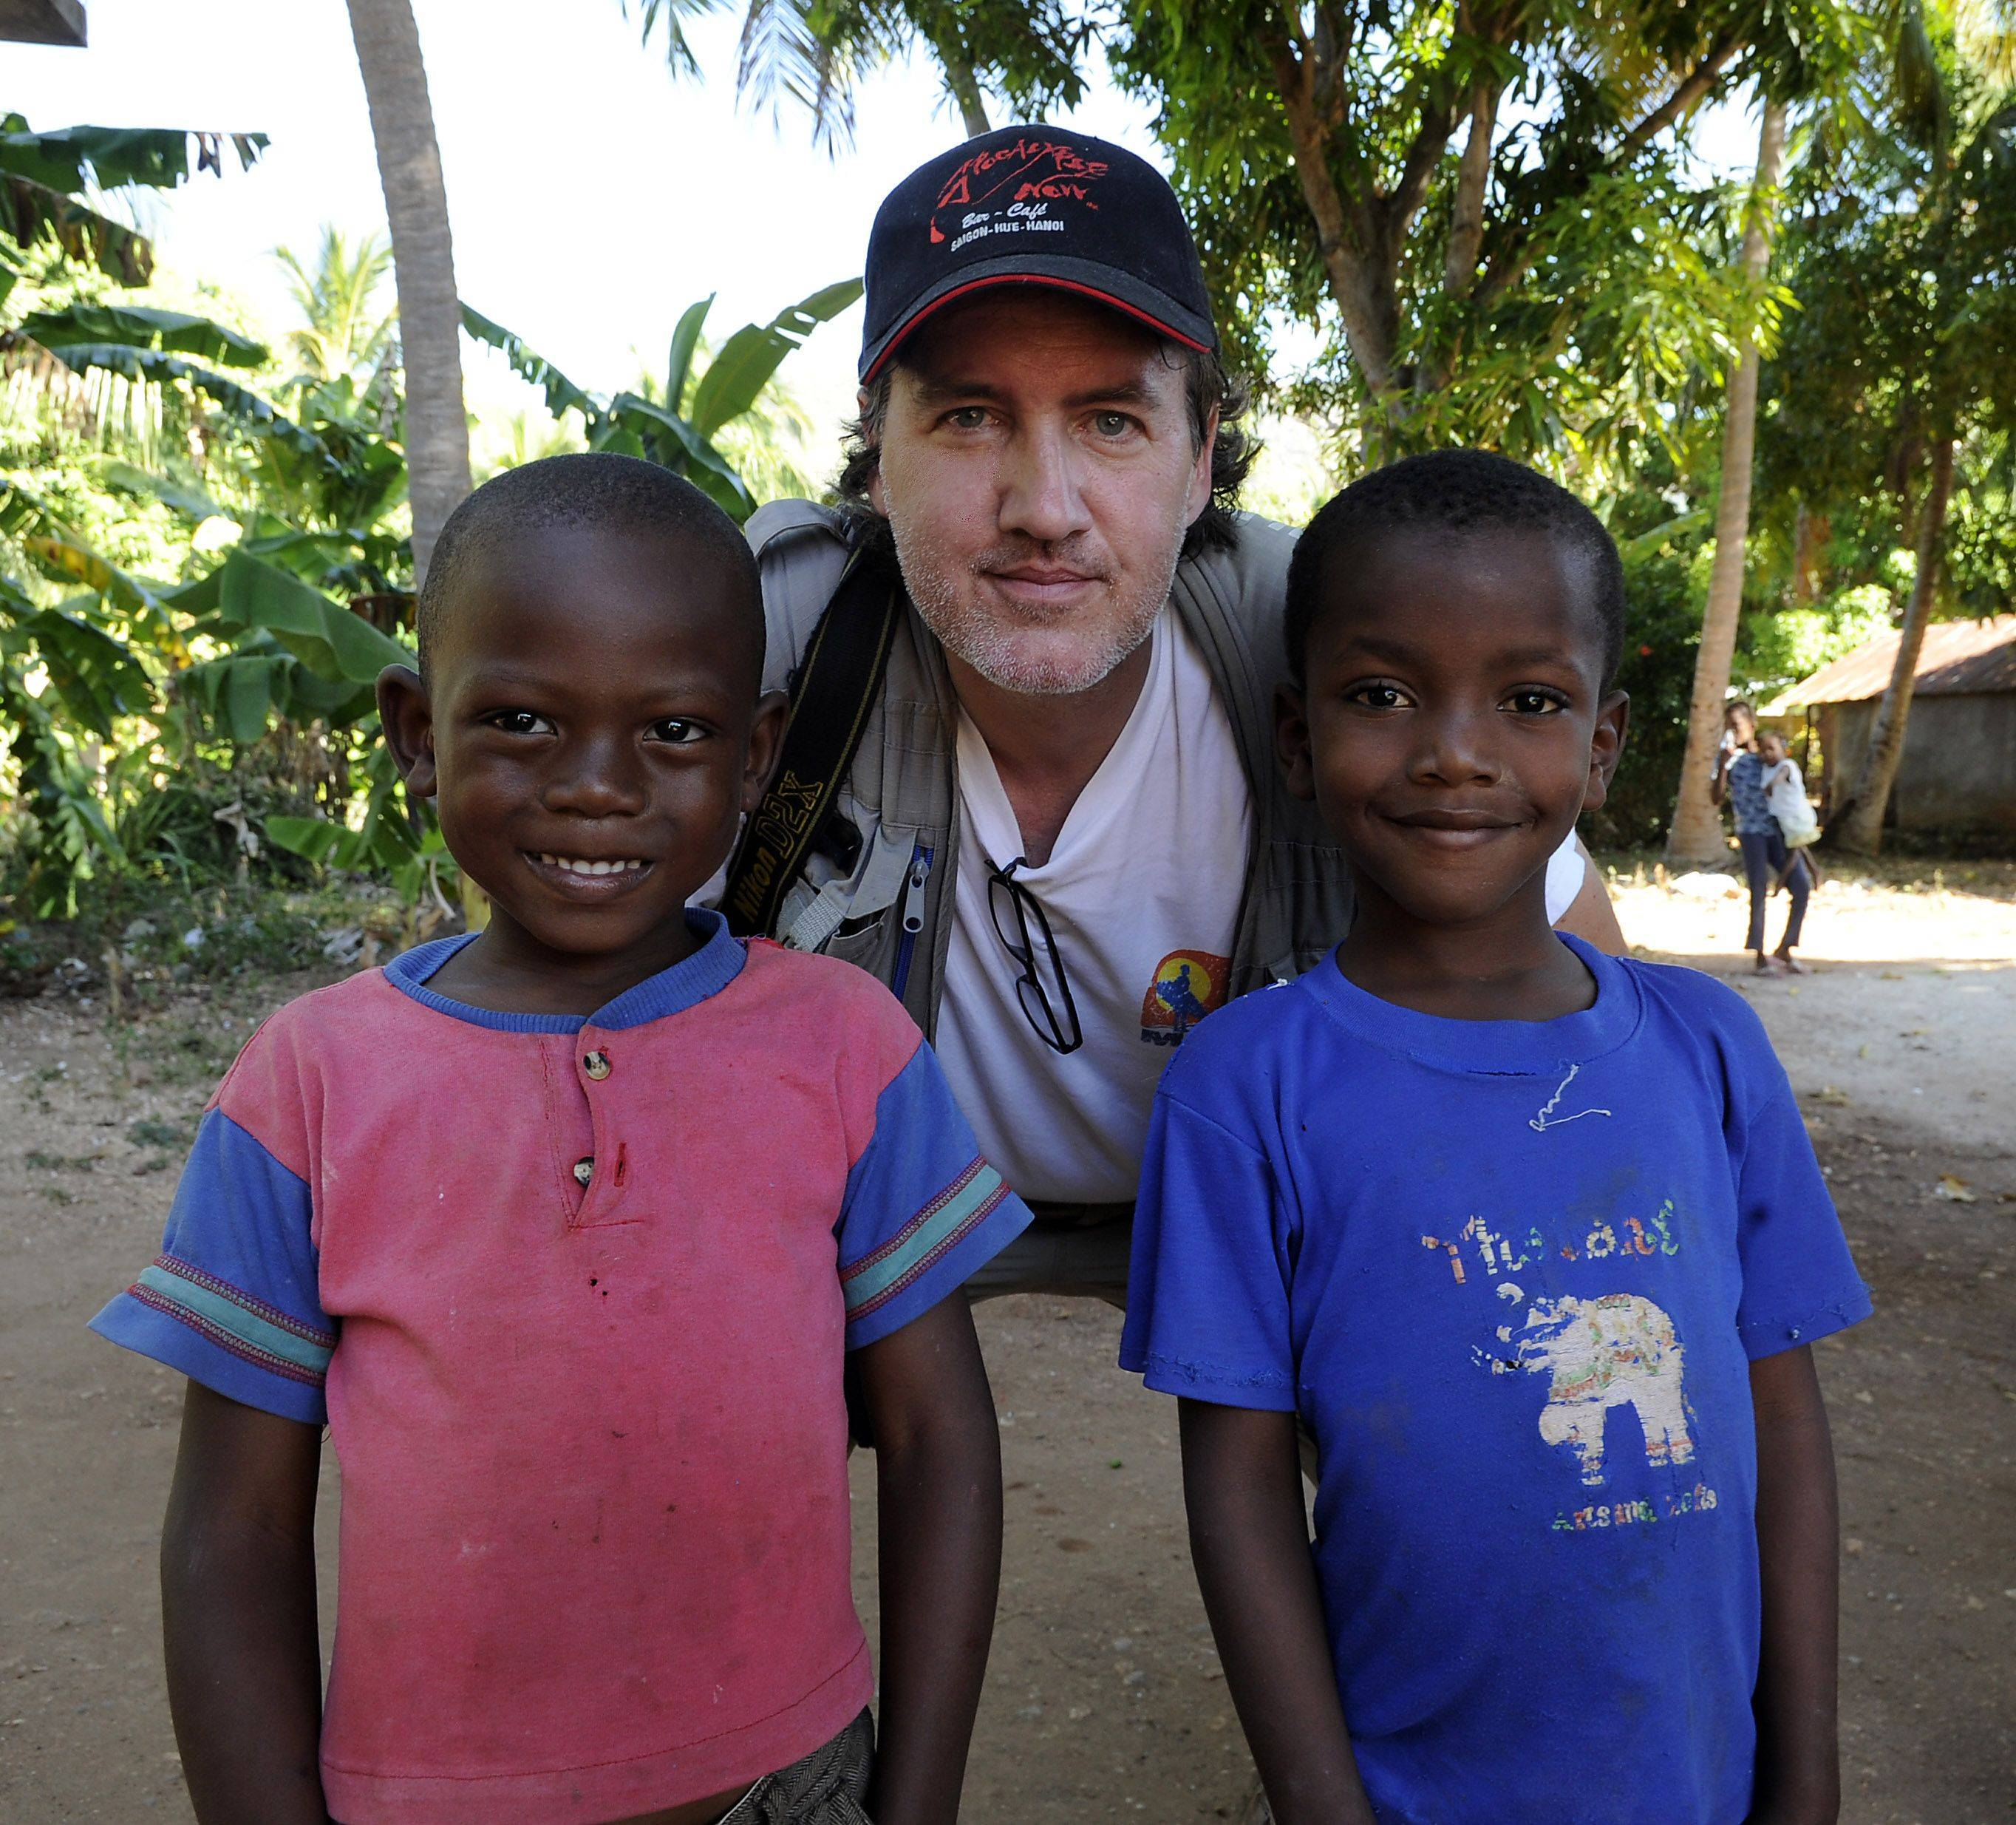 Daily Herald Senior Photographer Mark Welsh poses with Haitian children in Jacmel, Haiti.